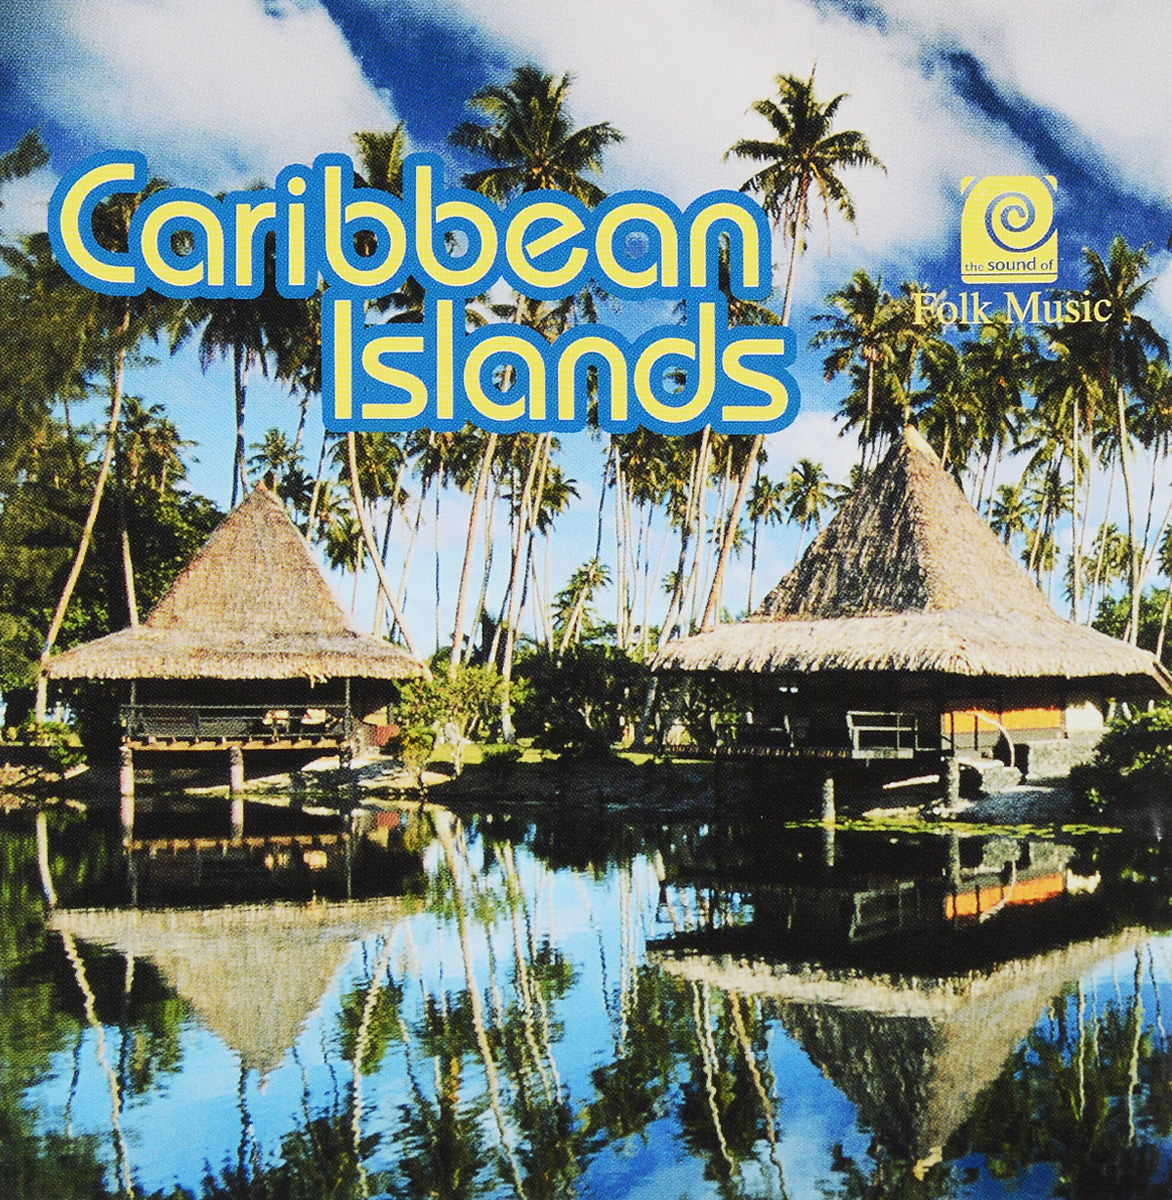 The Sound Of Folk Music - Caribbean Islands